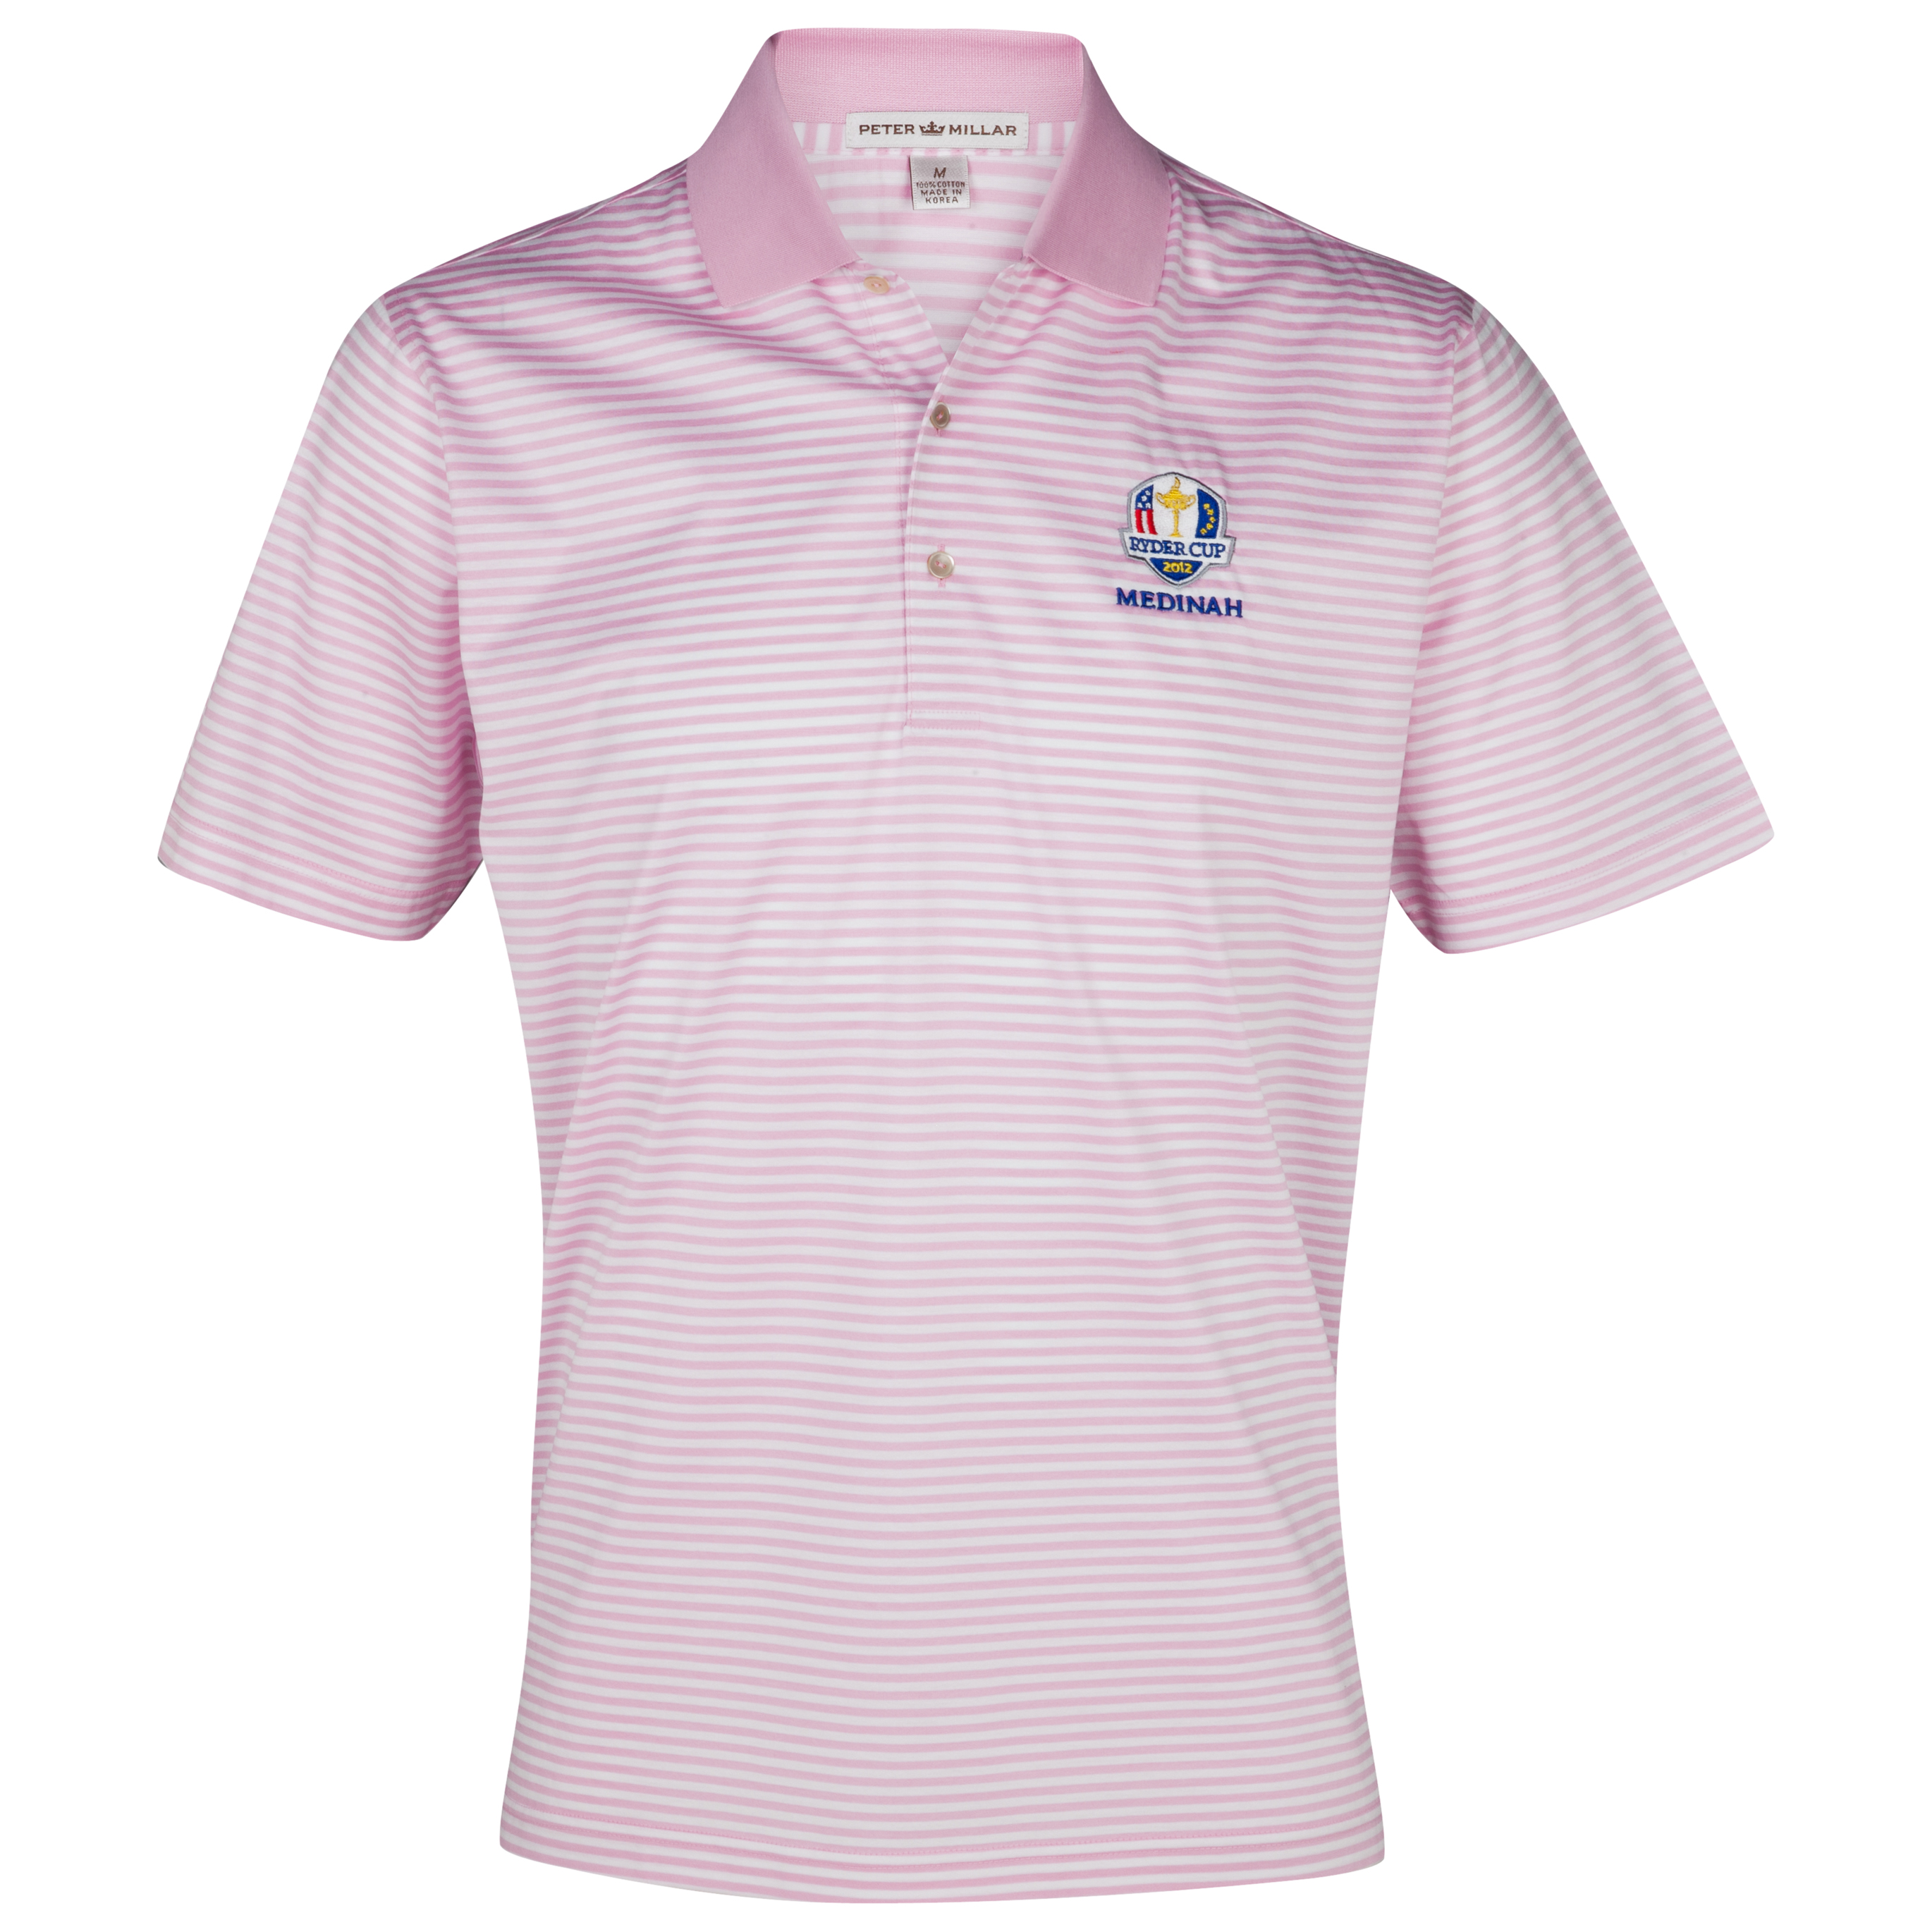 The 2012 Ryder Cup Peter Millar Luxury Stripe Polo - Retro Pink/White